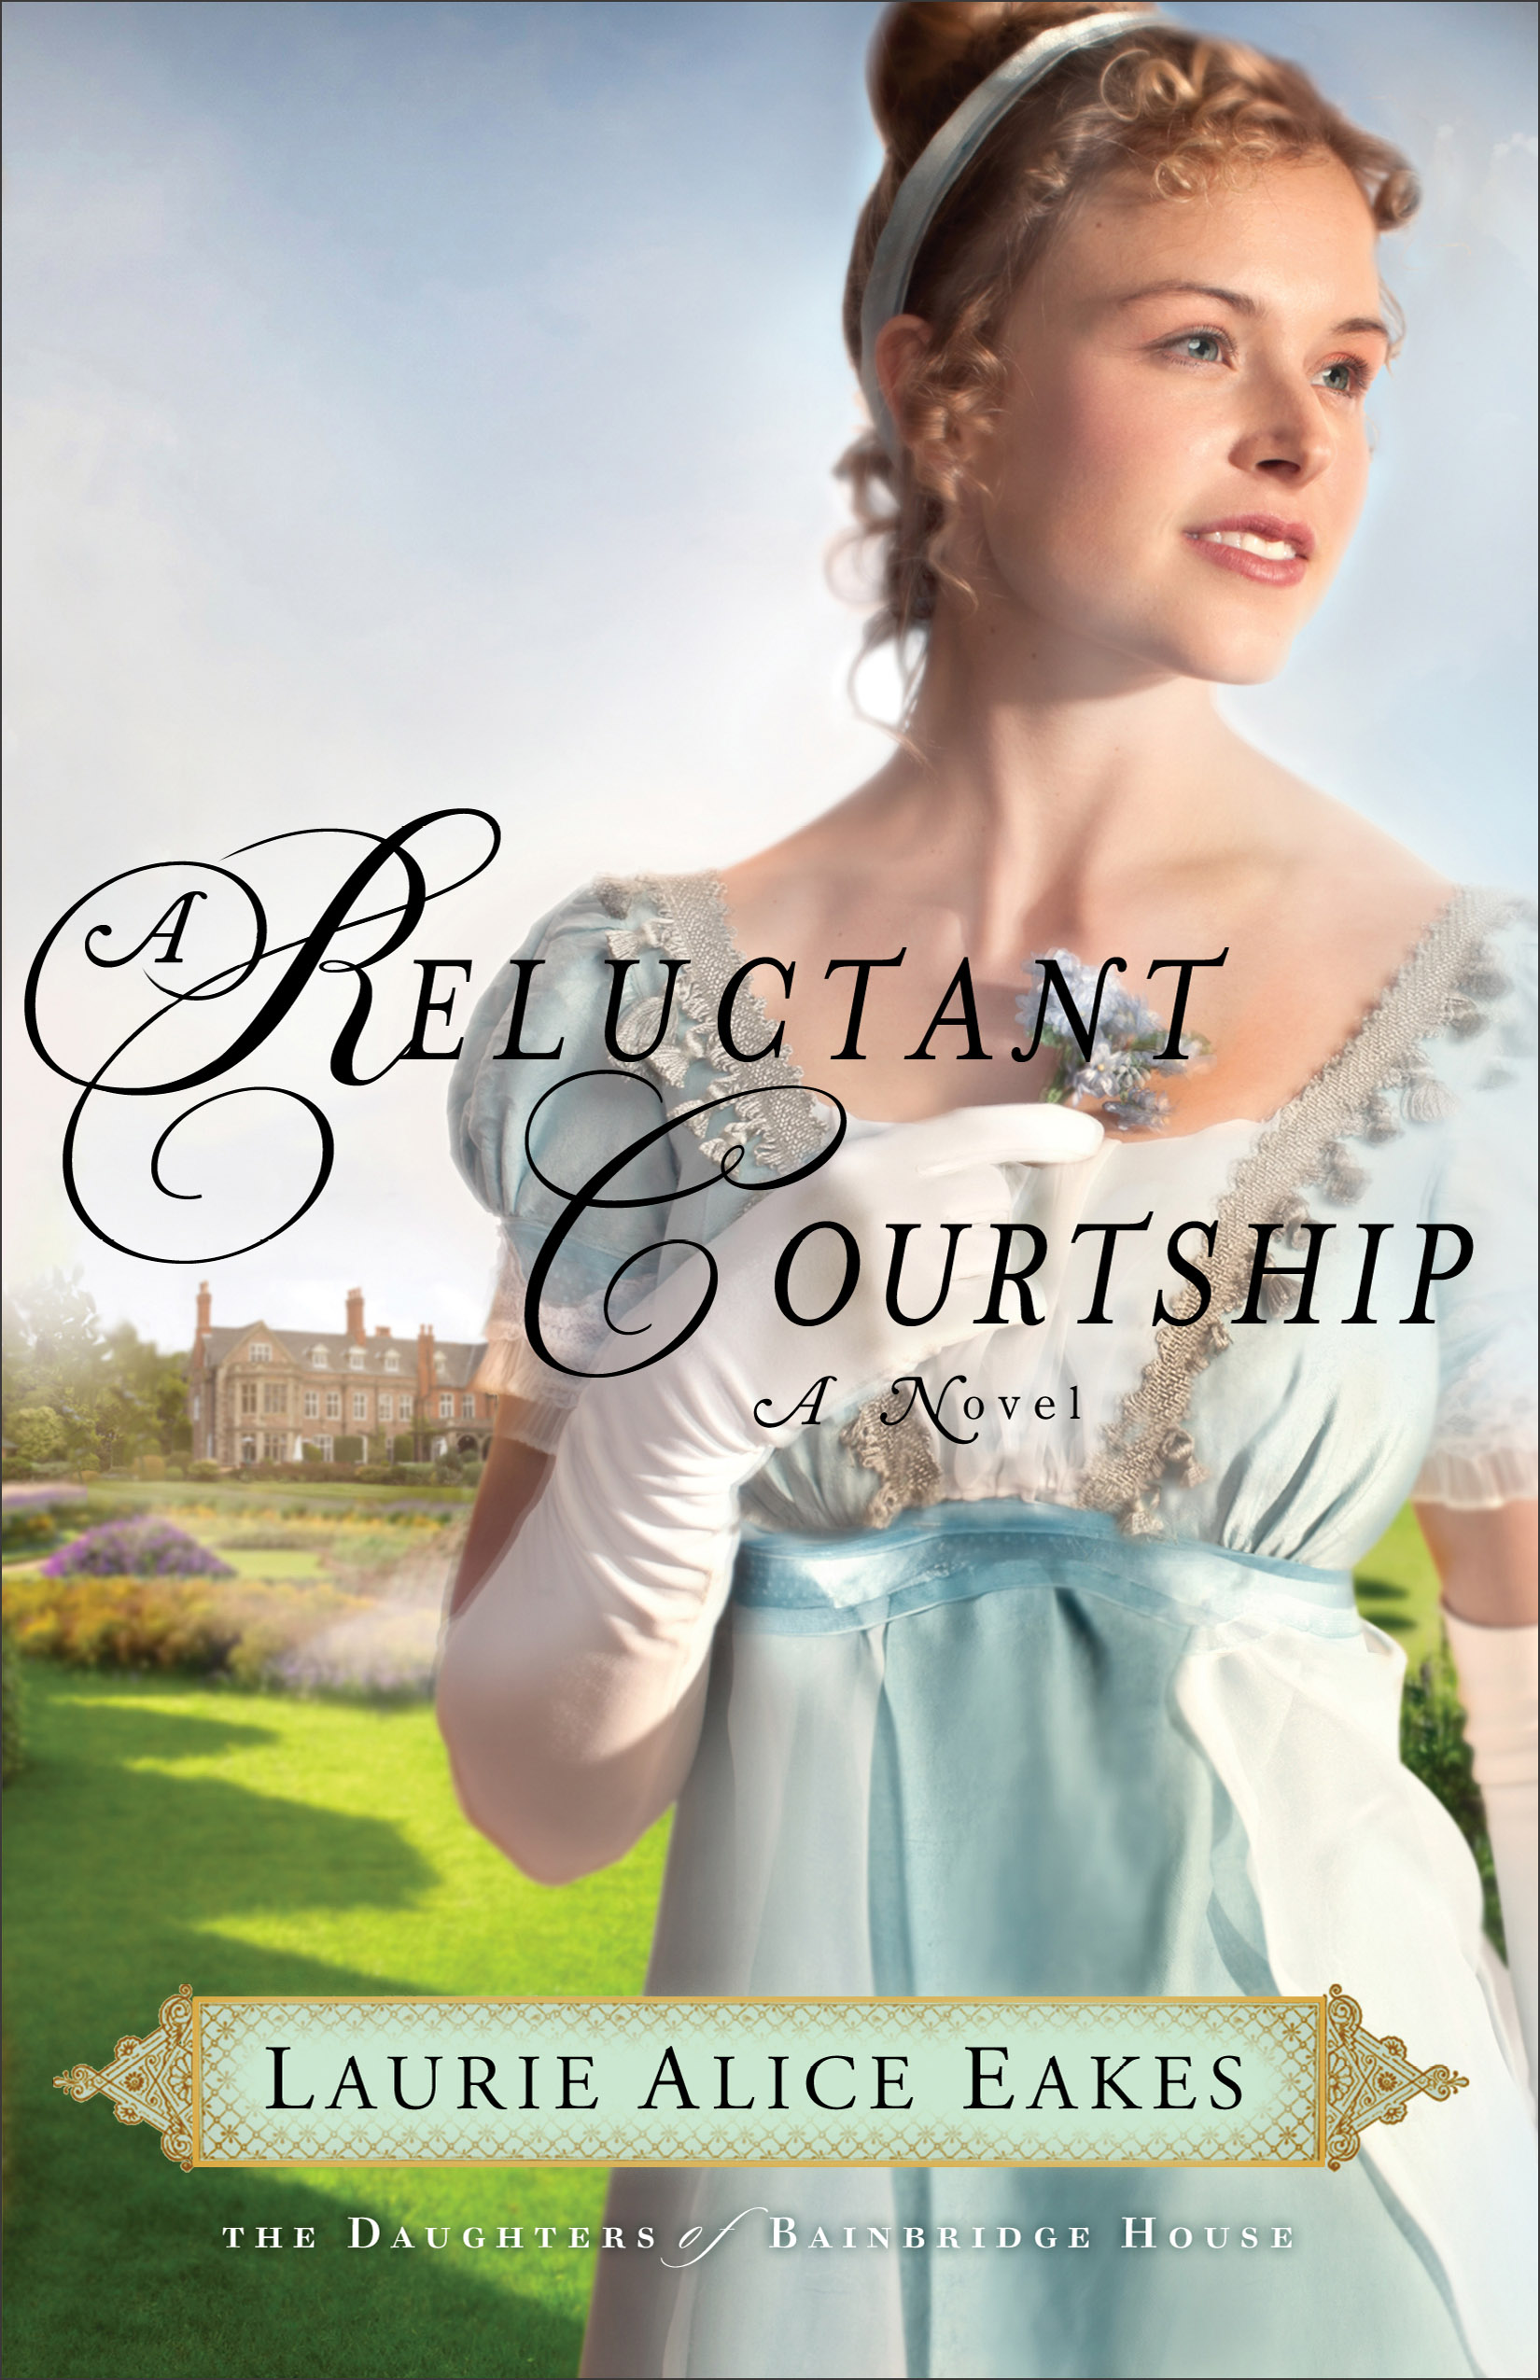 Reluctant Courtship by Laurie Alice Eakes